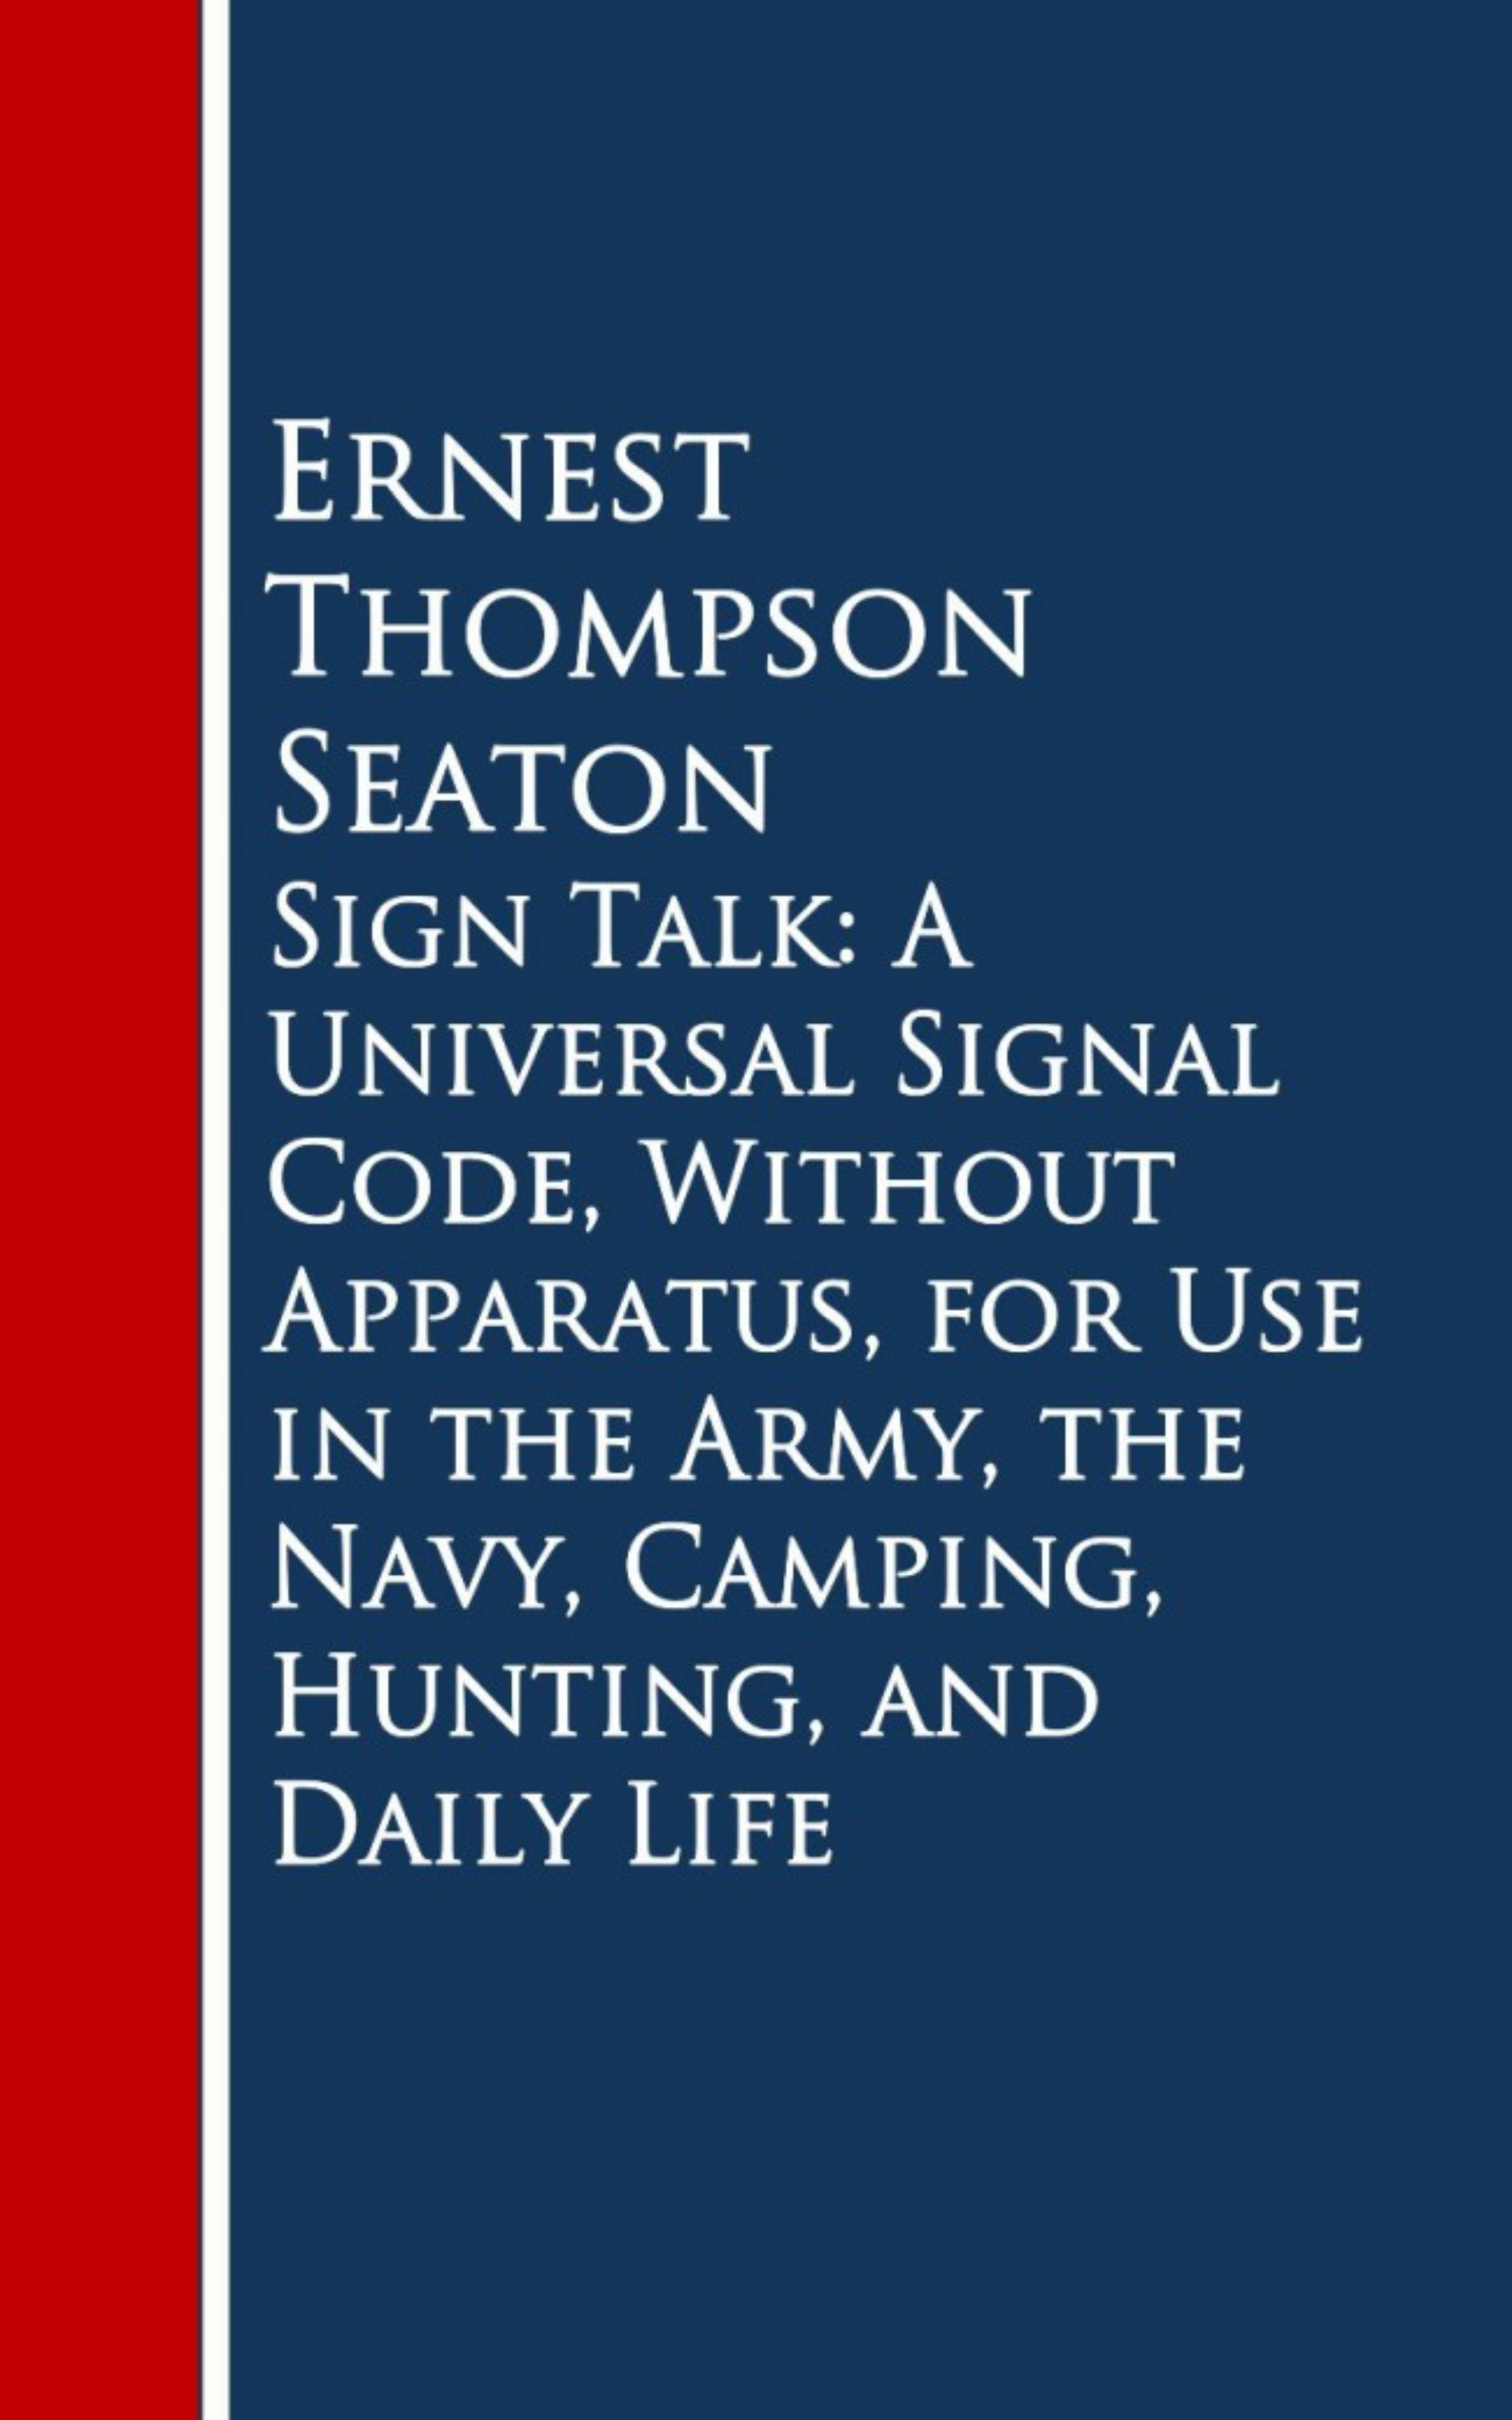 Ernest Thompson Seaton Sign Talk: A Universal Signal Code, Without Appara, Hunting, and Daily Life linda wagner martin ernest hemingway a literary life